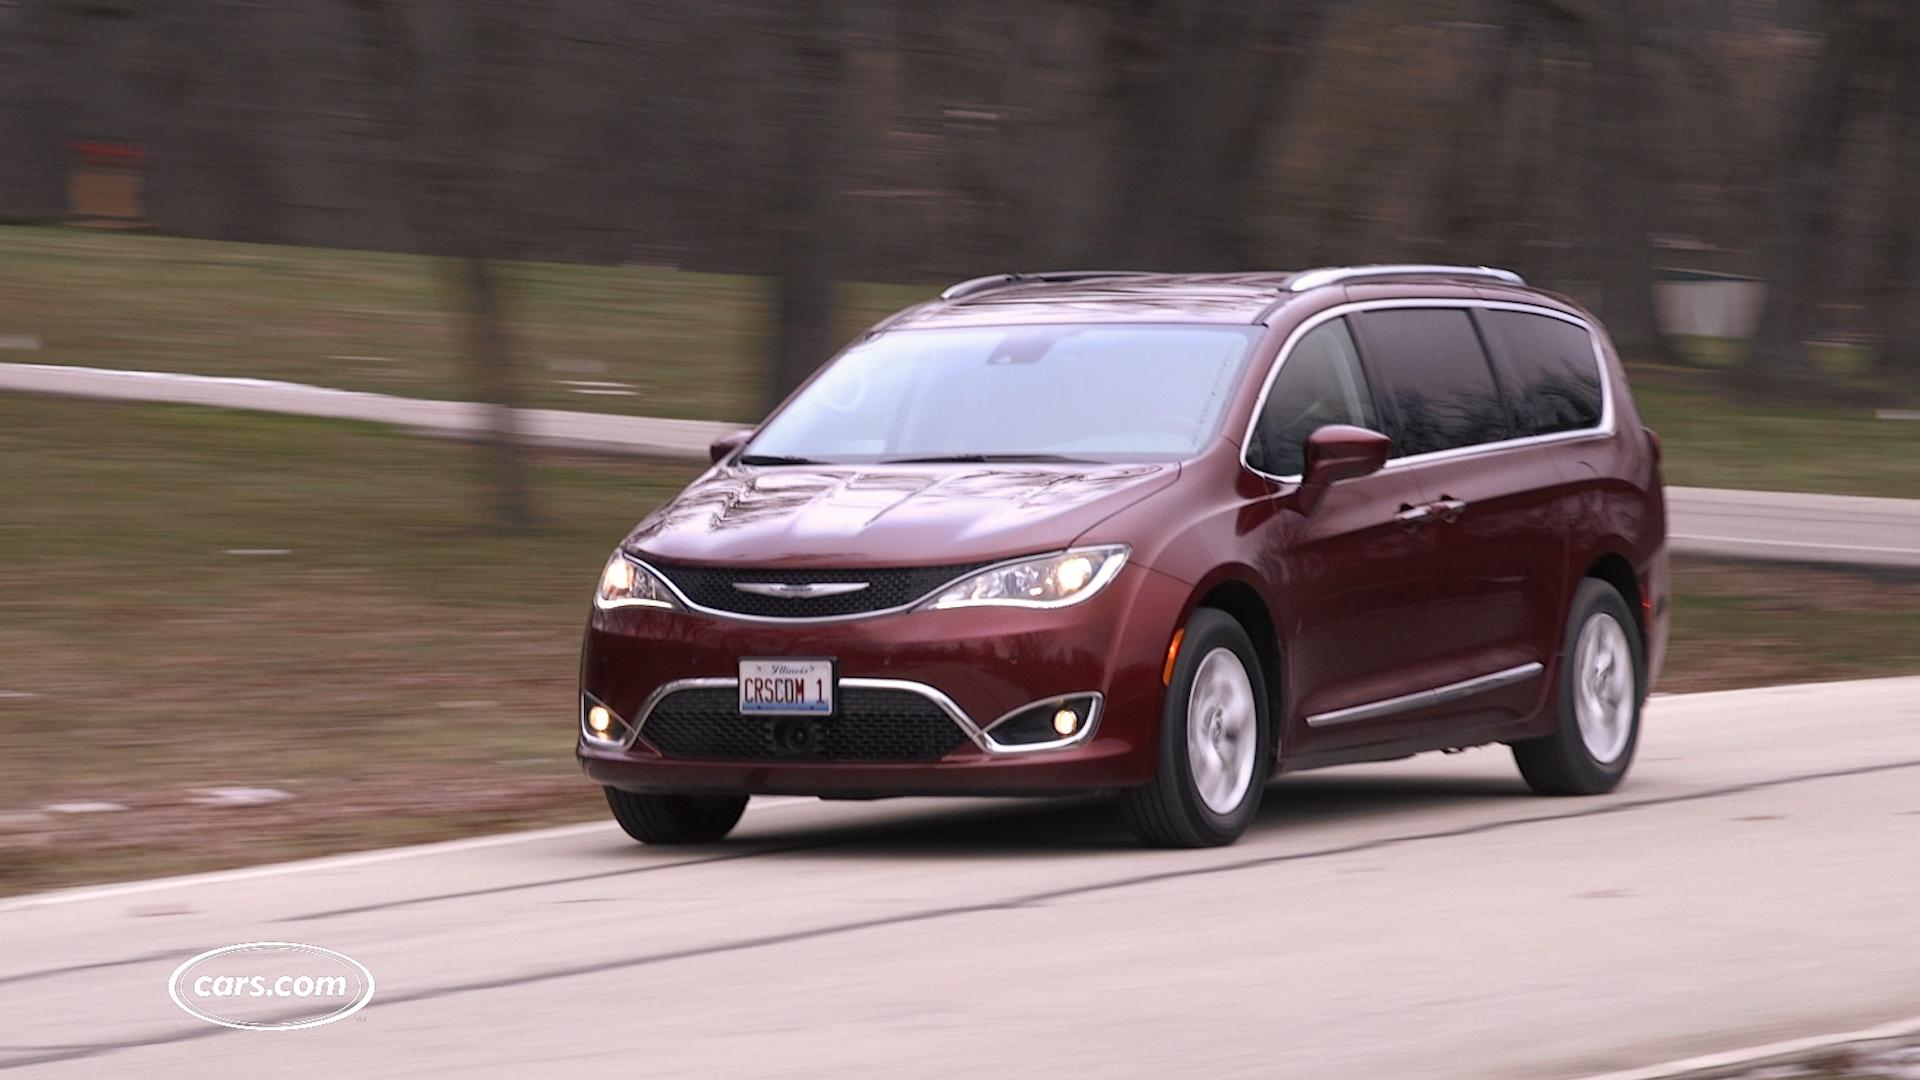 Video: We Bought a 2017 Chrysler Pacifica